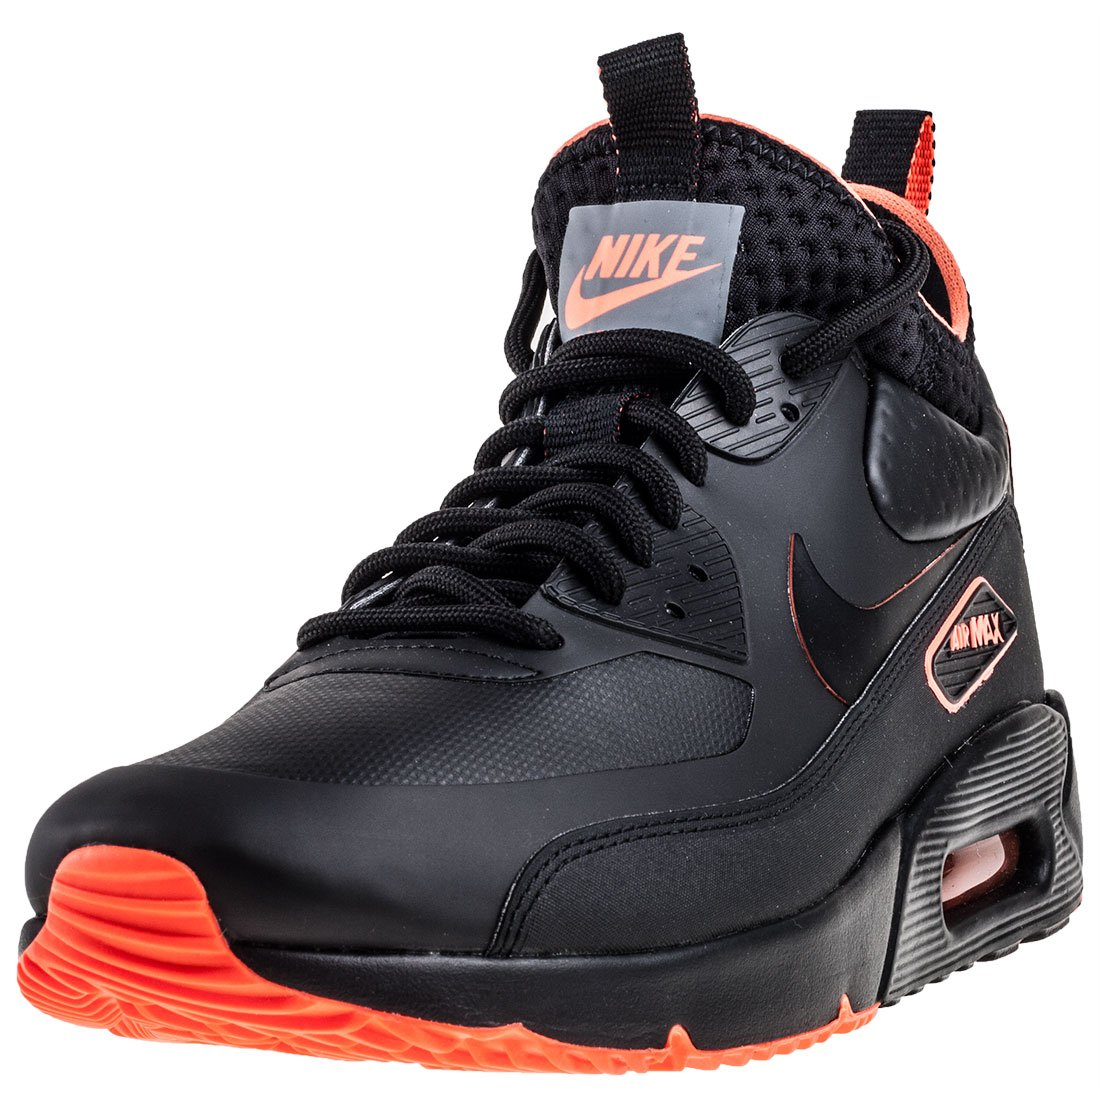 Nike Herren Air Max 90 Ultra Mid Winter SE Schwarz Leder/Synthetik Sneaker  40 EU|Schwarz (Black/Anthracite)